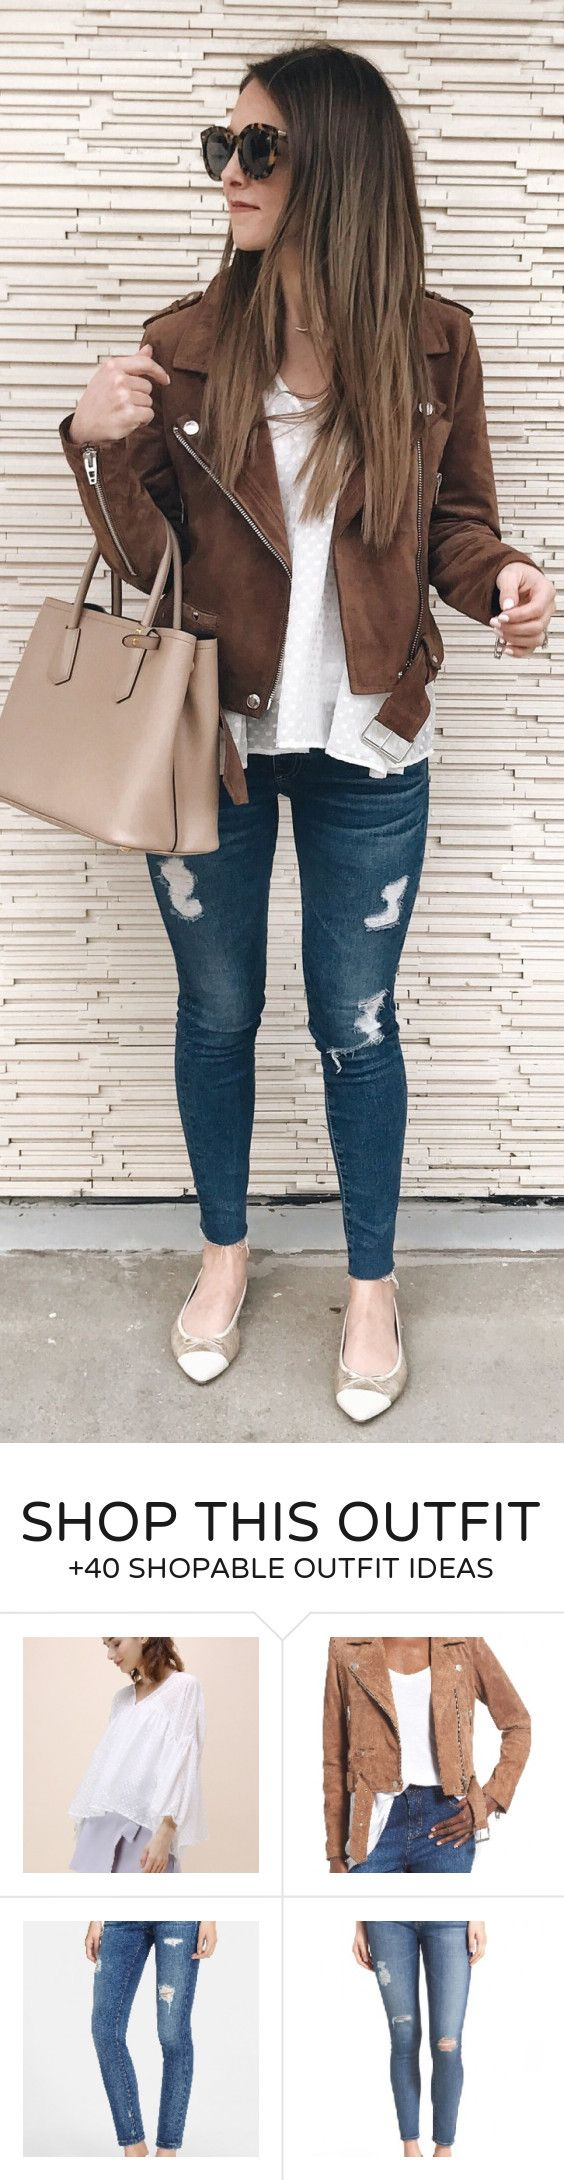 lovely spring outfits / Brown Suede Jacket / White Tee / Ripped Skinny Jeans / Brown Leather Tote Bag